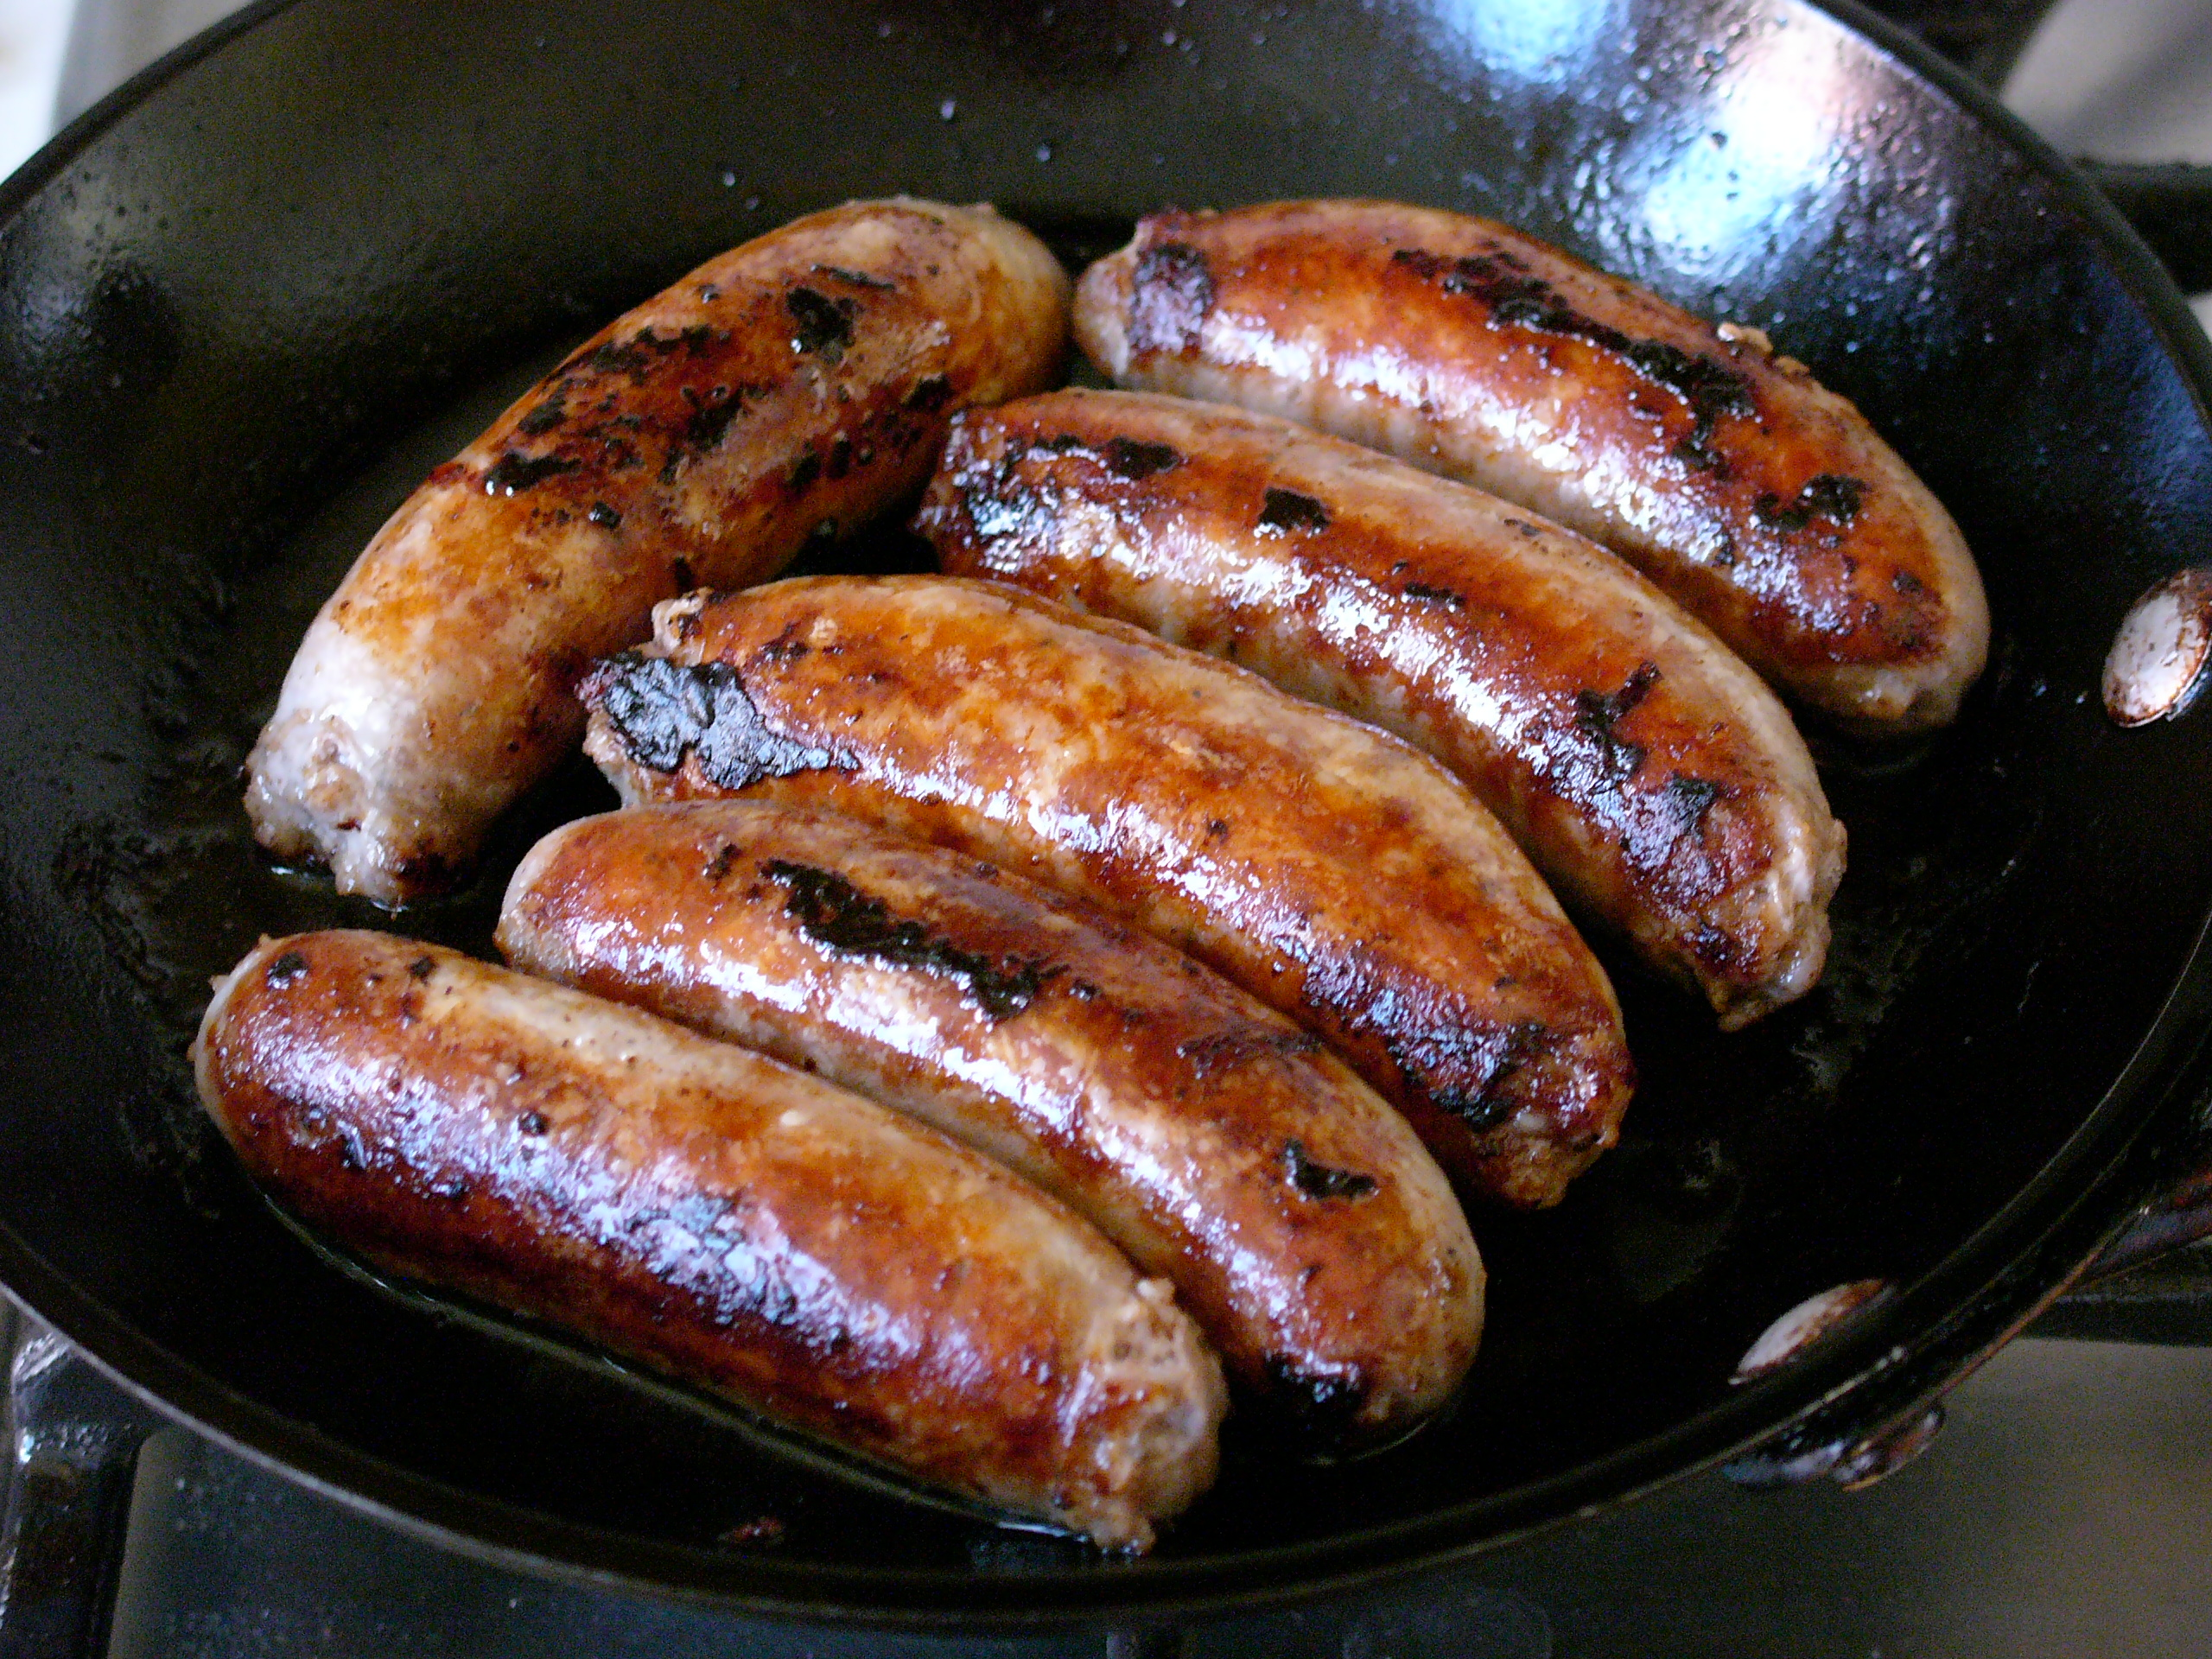 How To Cook Sausages Without Them Bursting Beyond Baked